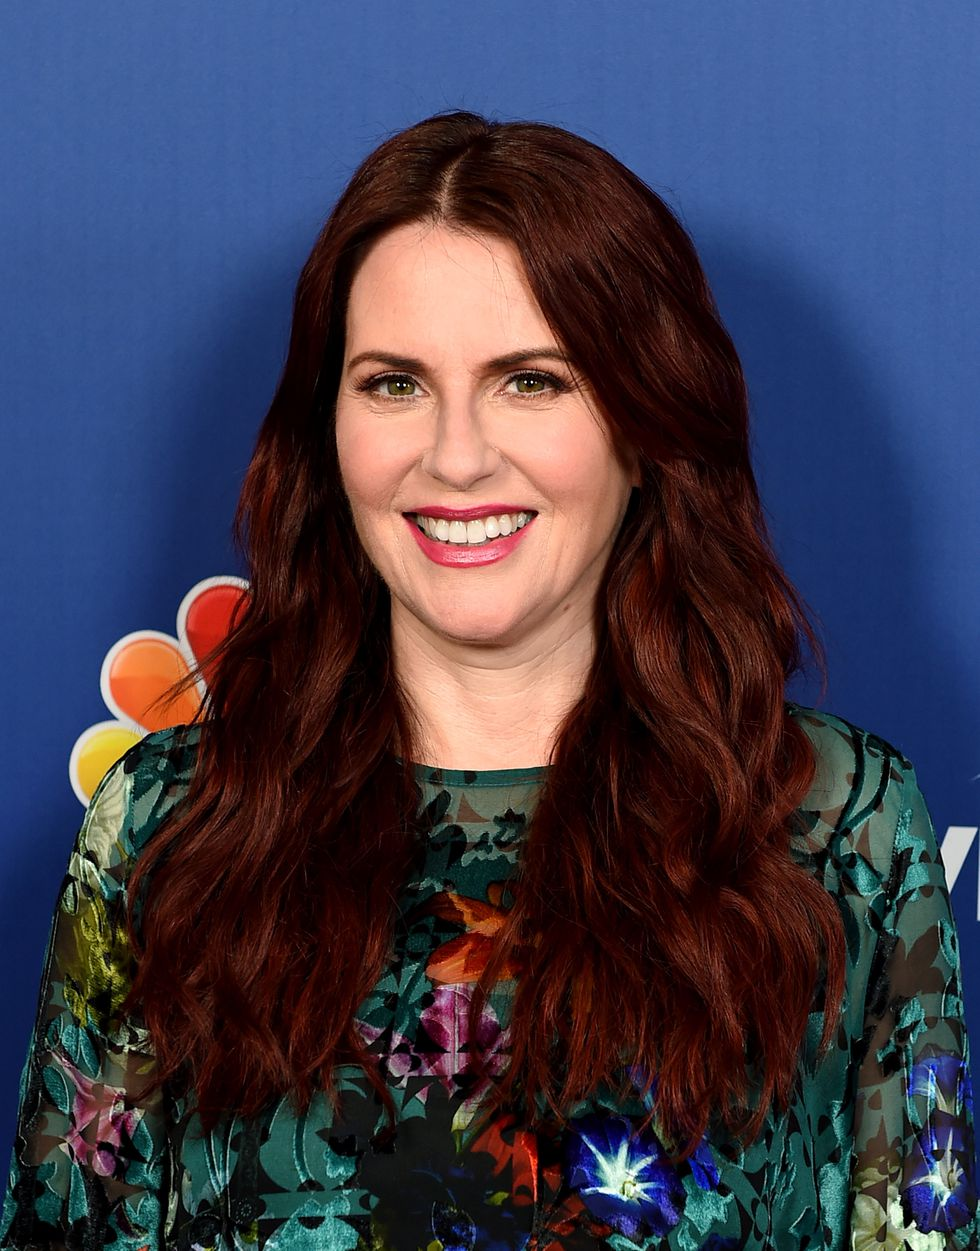 TREND: Burgundy Hair   Pinterest fans can't get enough of deep red tones, like Megan Mullally's oxblood-colored locks. From brighter hues to more rich shades, there is definitely interest (read: pins galore) in this autumnal color.